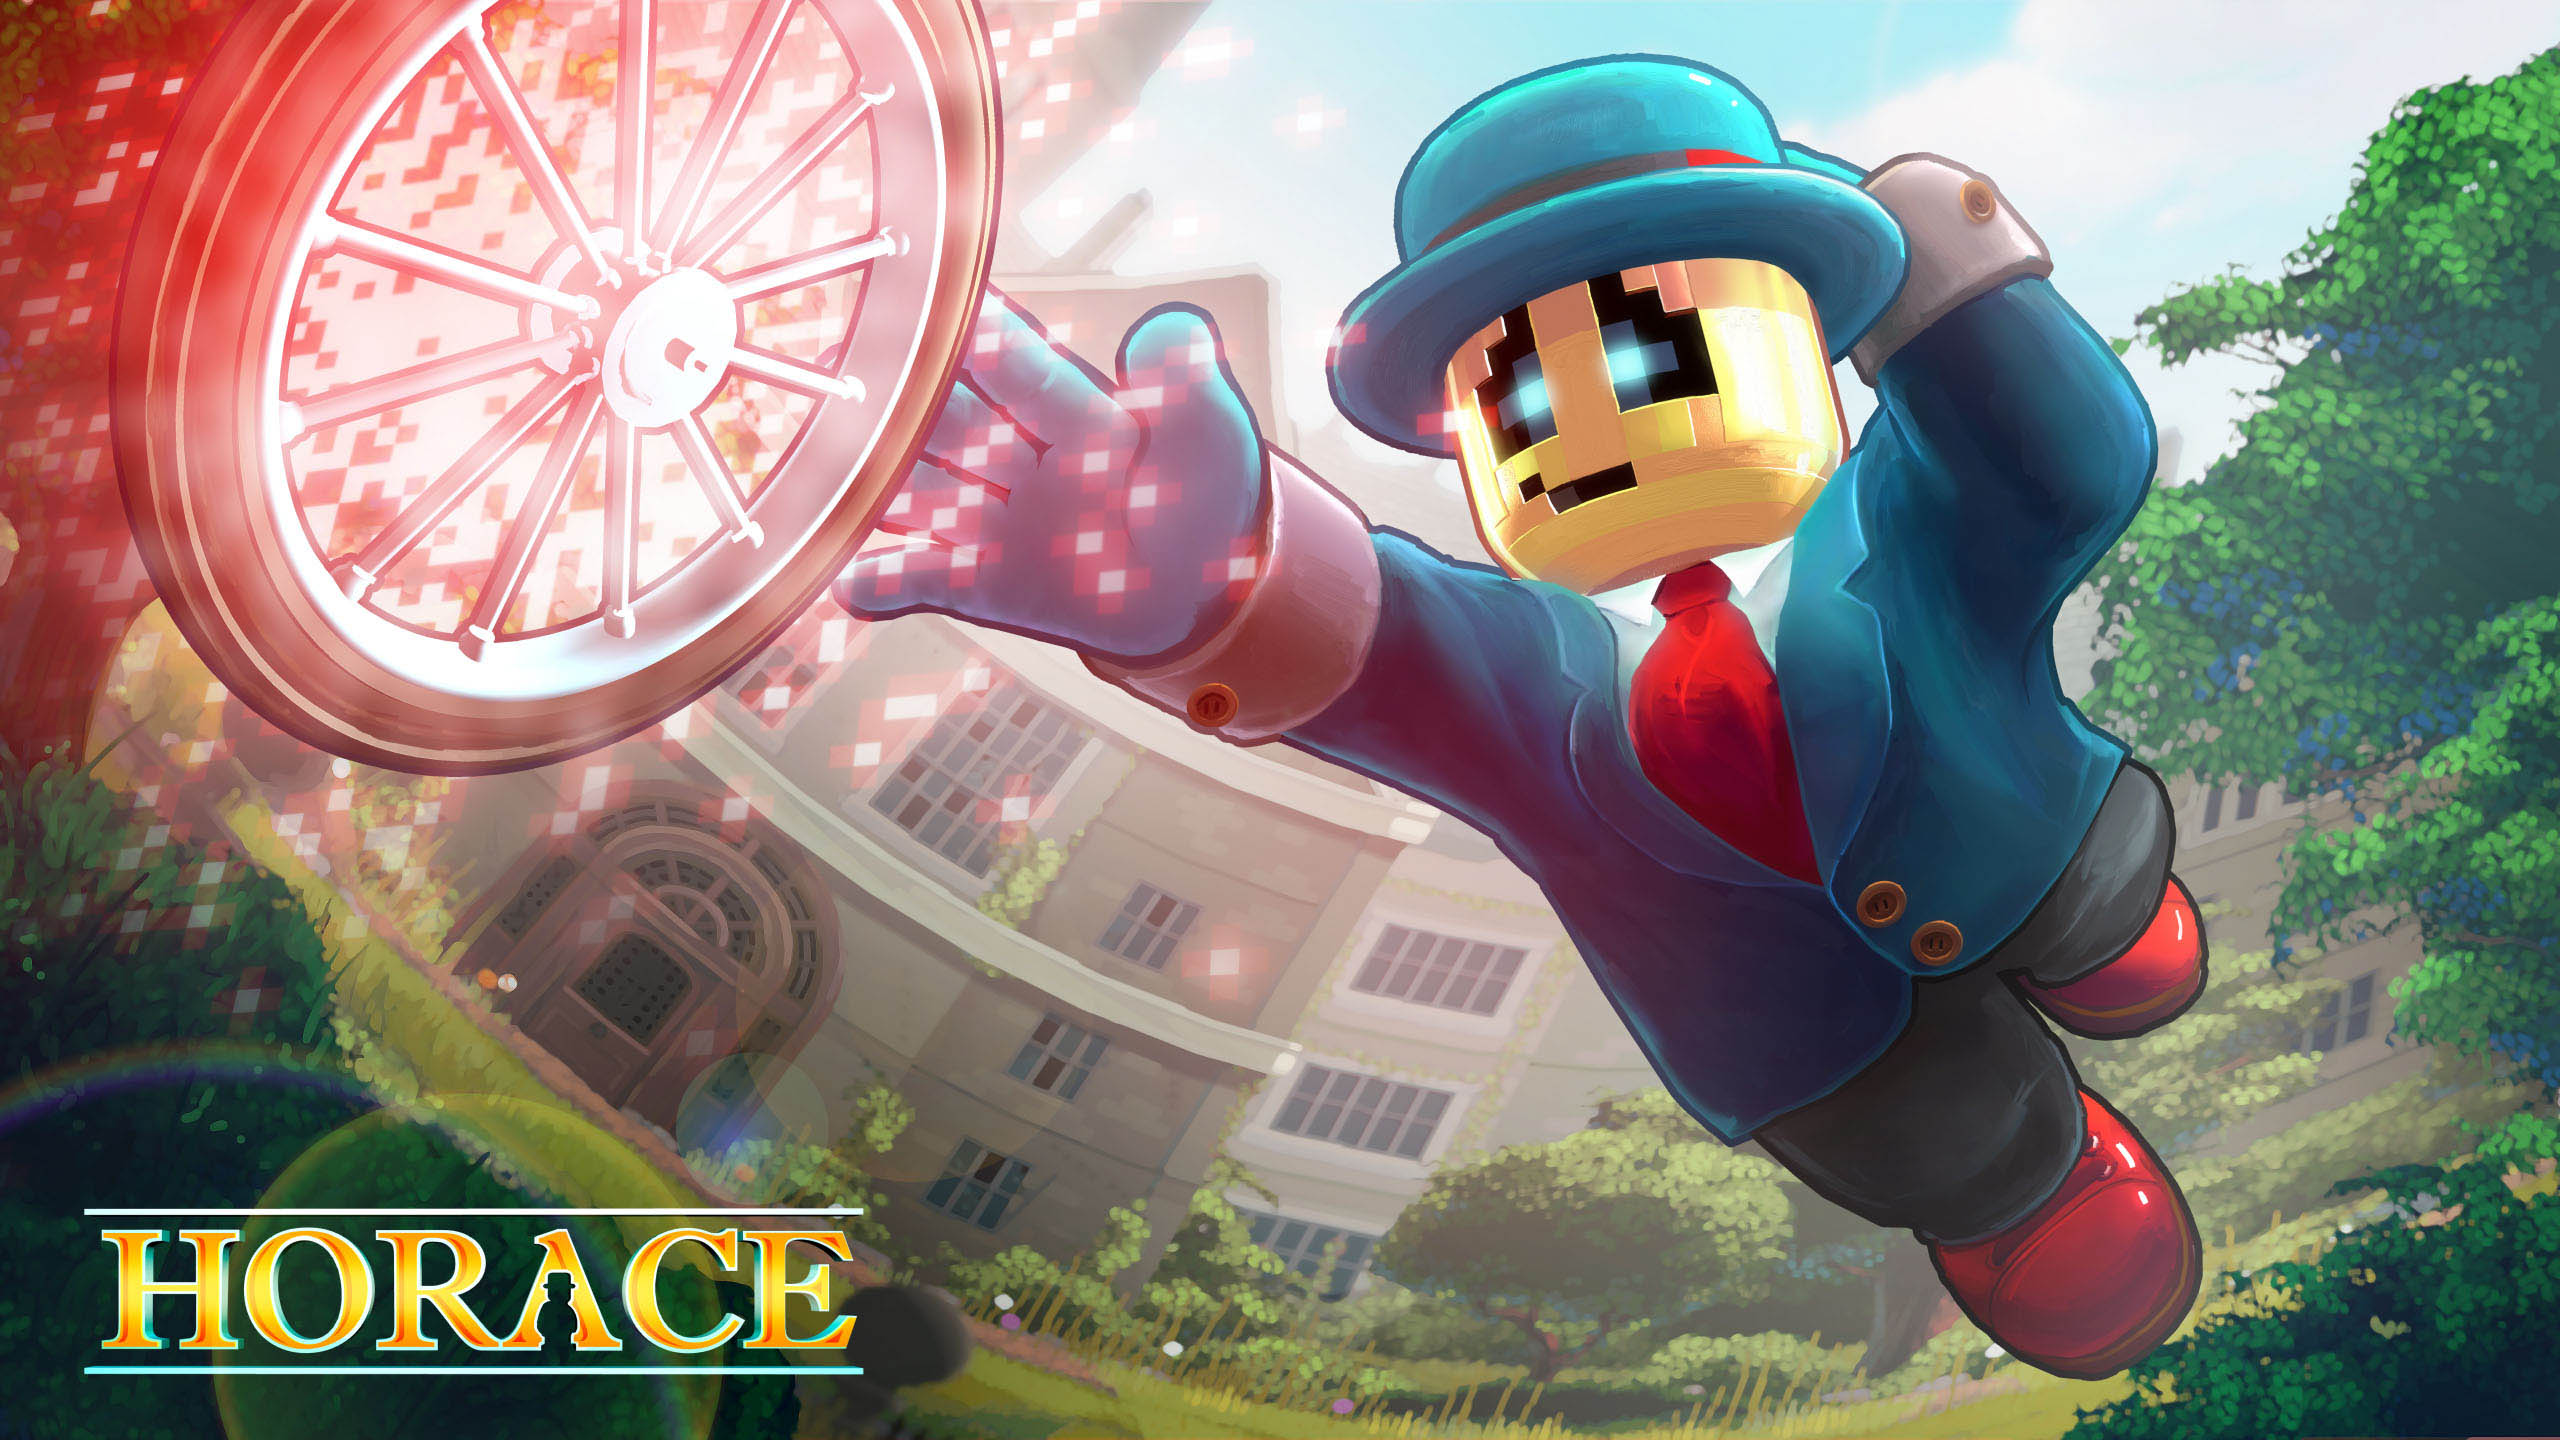 Horace   Download and Buy Today - Epic Games Store